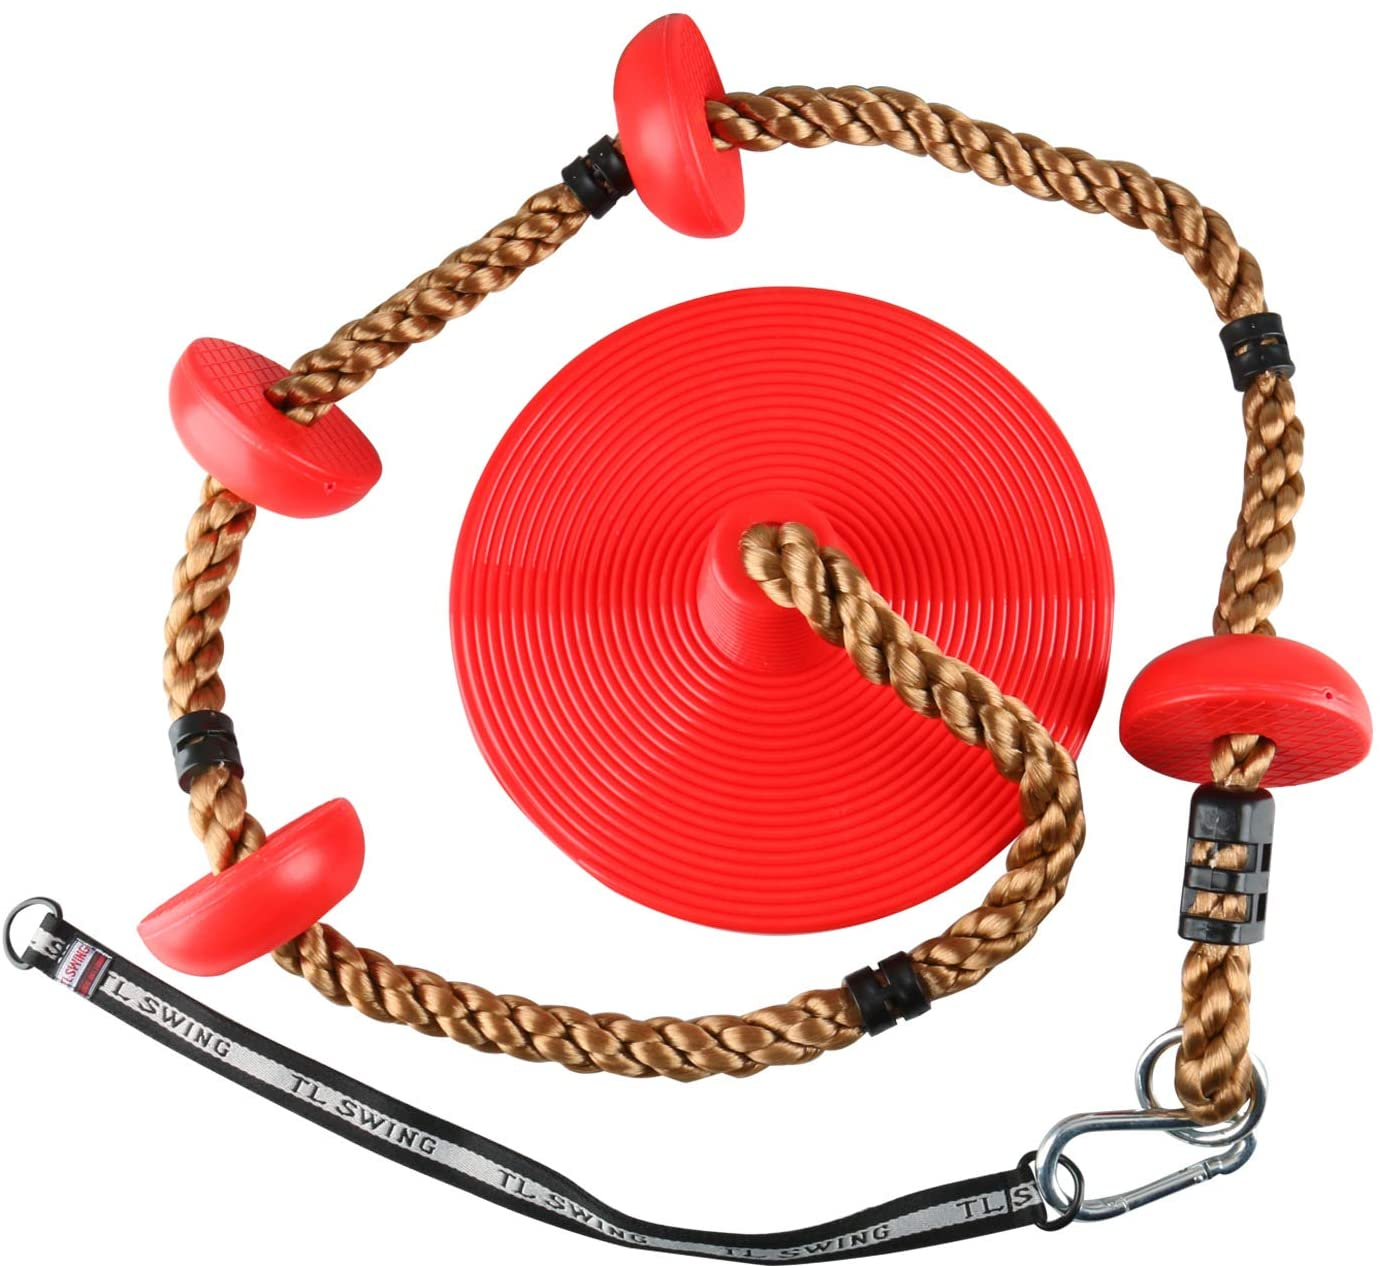 6.5ft Tree Climbing Rope and Kids Swing: Climbing Rope for Kids with Foot Hold Platforms, Disc Tree Swing Seat, and Hanging Kit with Tree Strap Outdoor Swings and Swing Set Accessories Rope Swing, Red